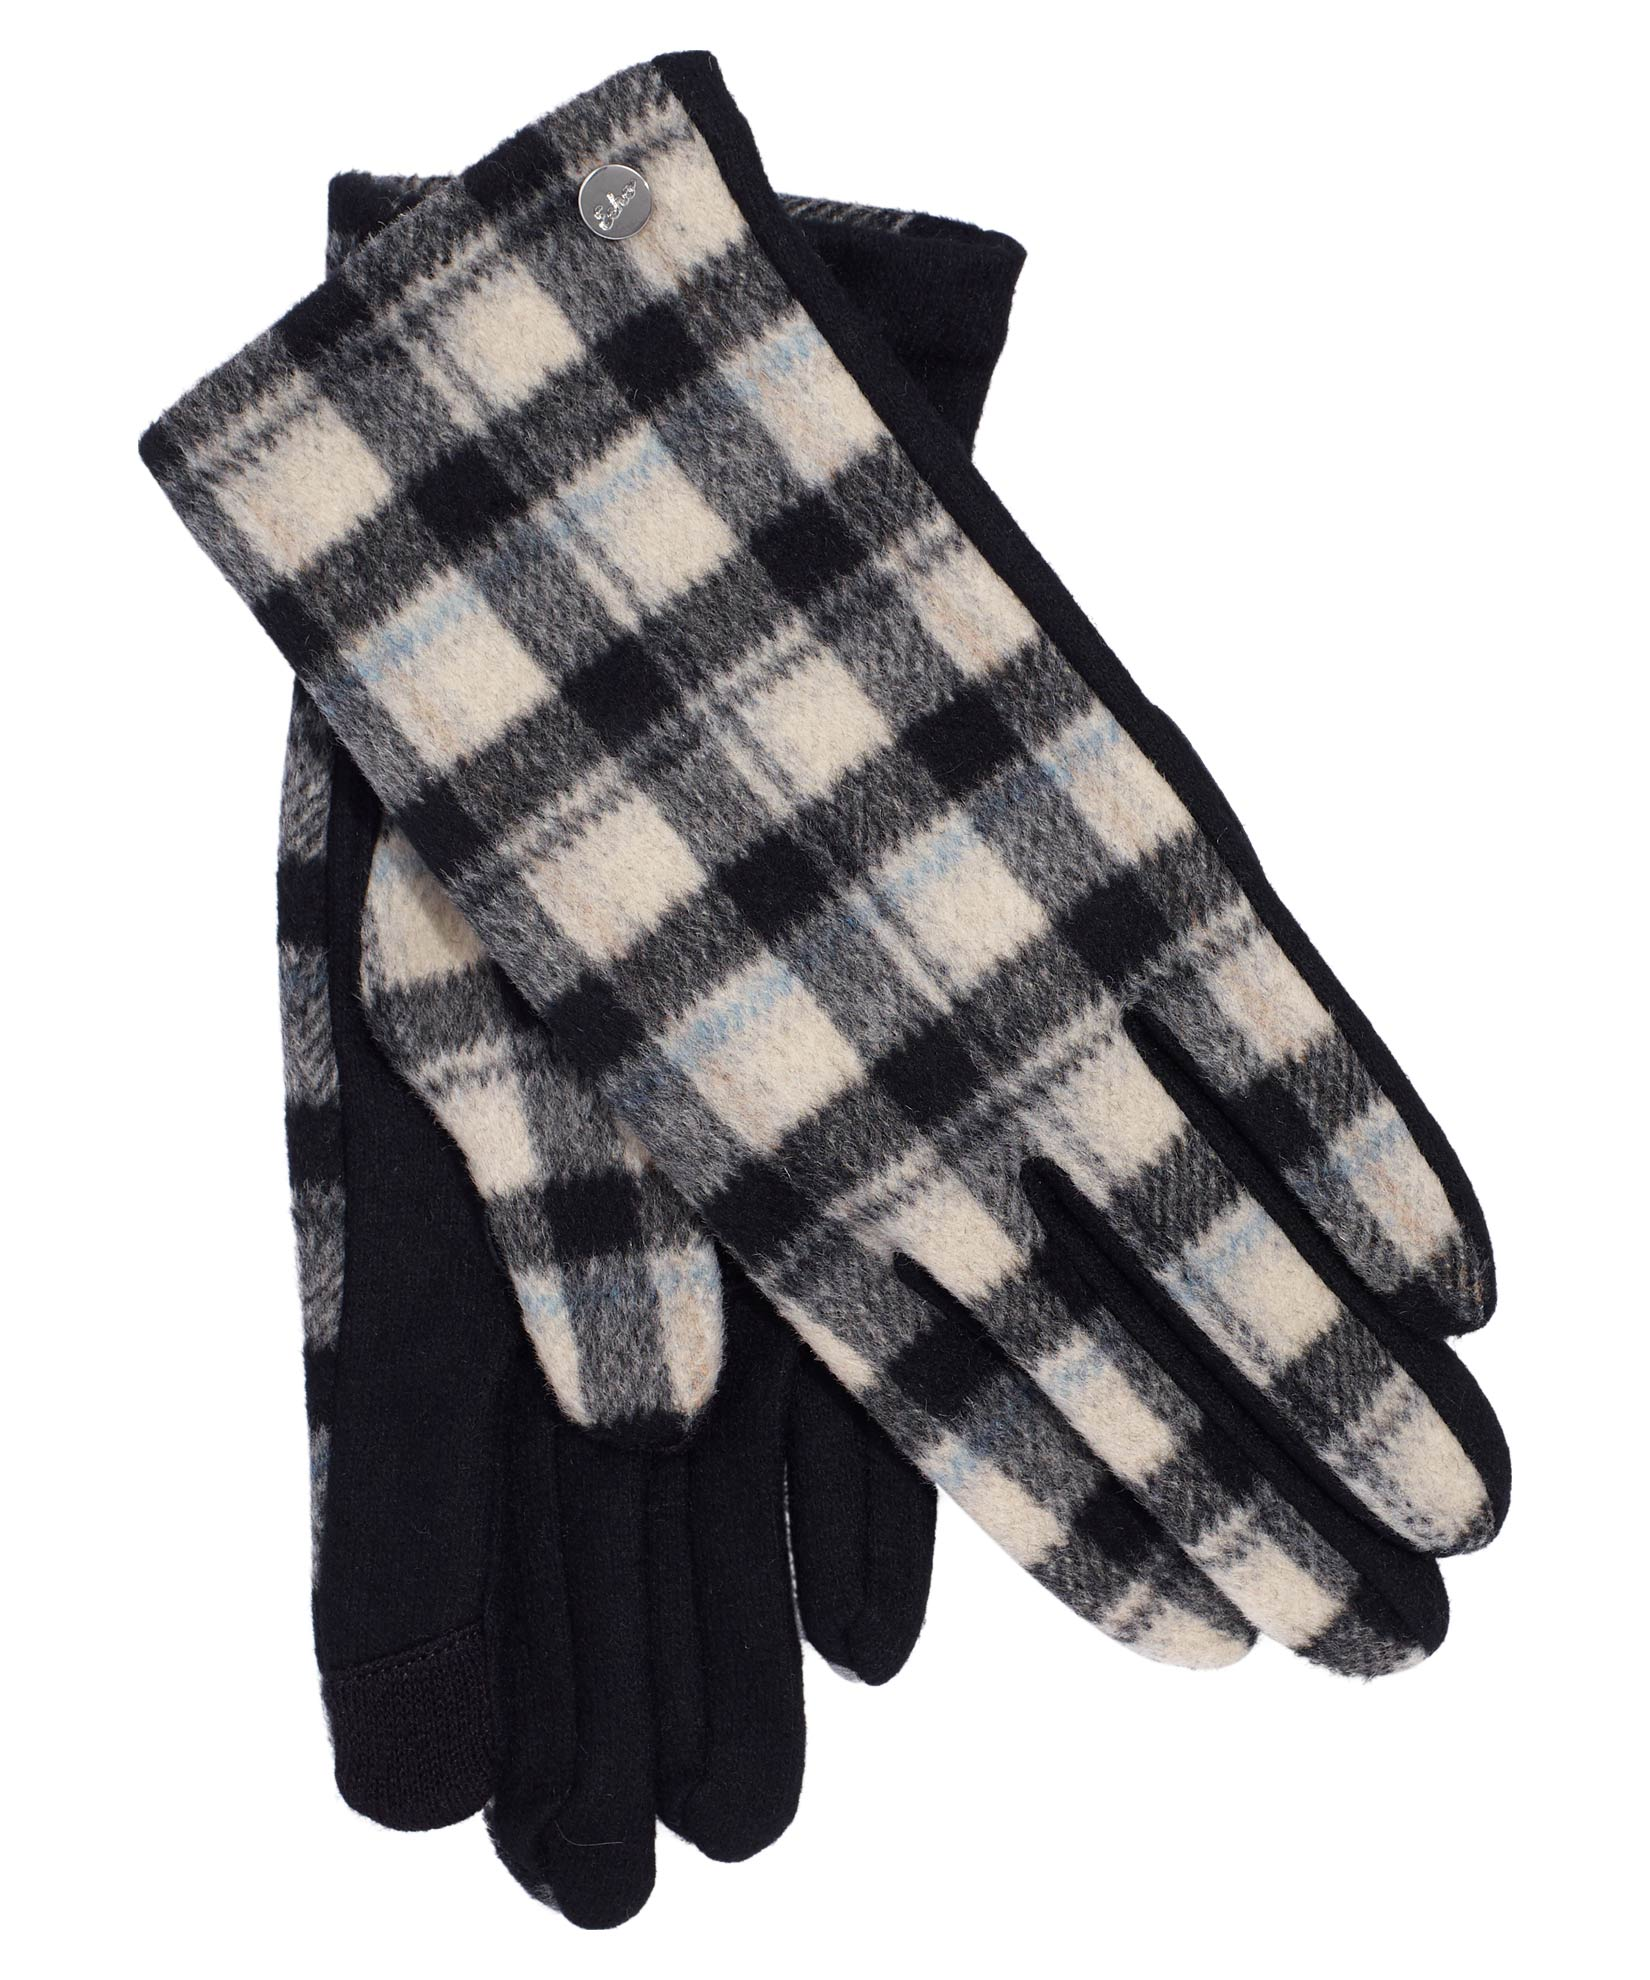 Black - Plaid Touch Glove